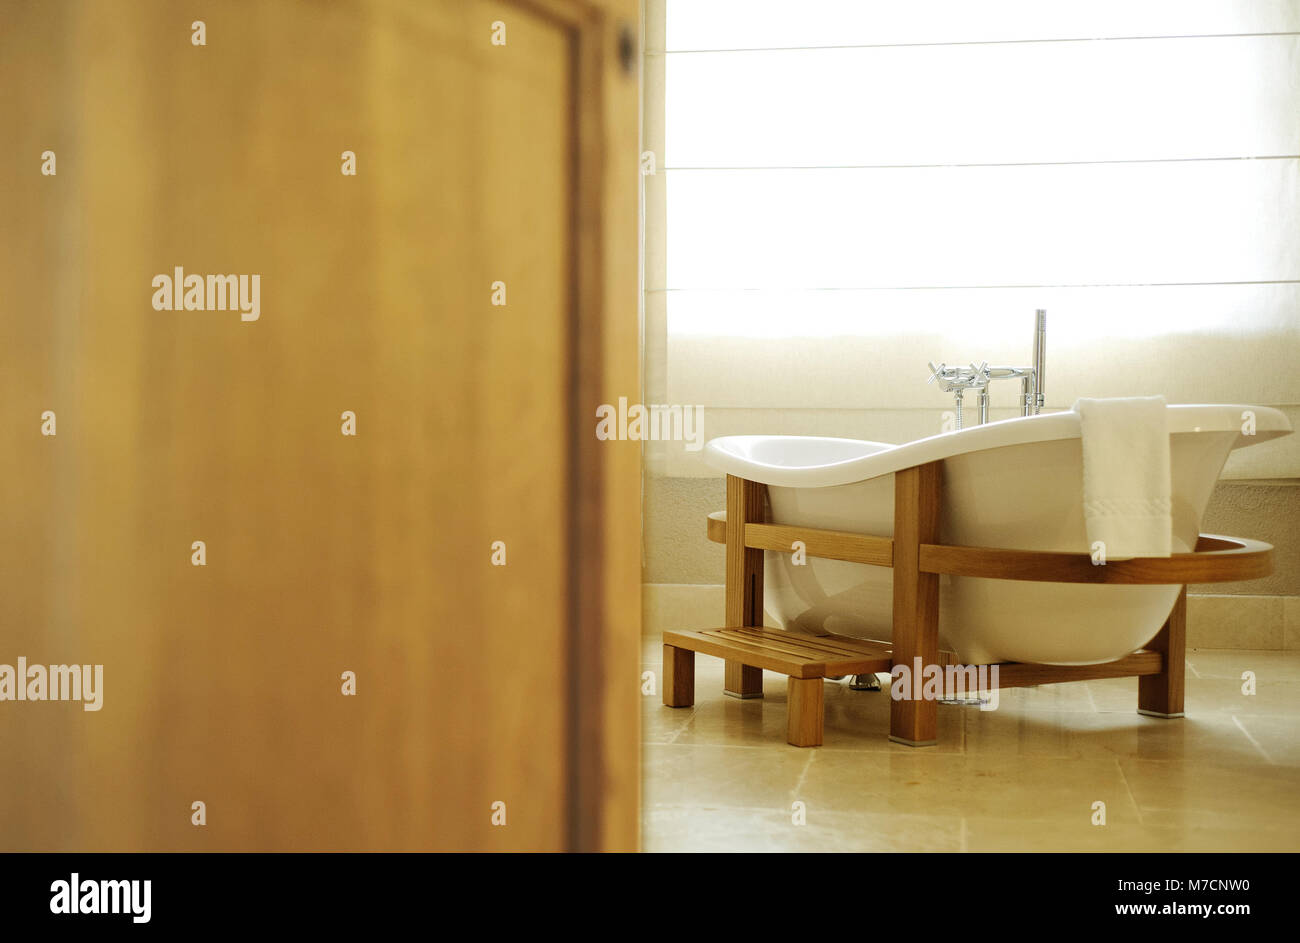 beautiful white bath for an open door. Bath stands in a wooden frame - Stock Image